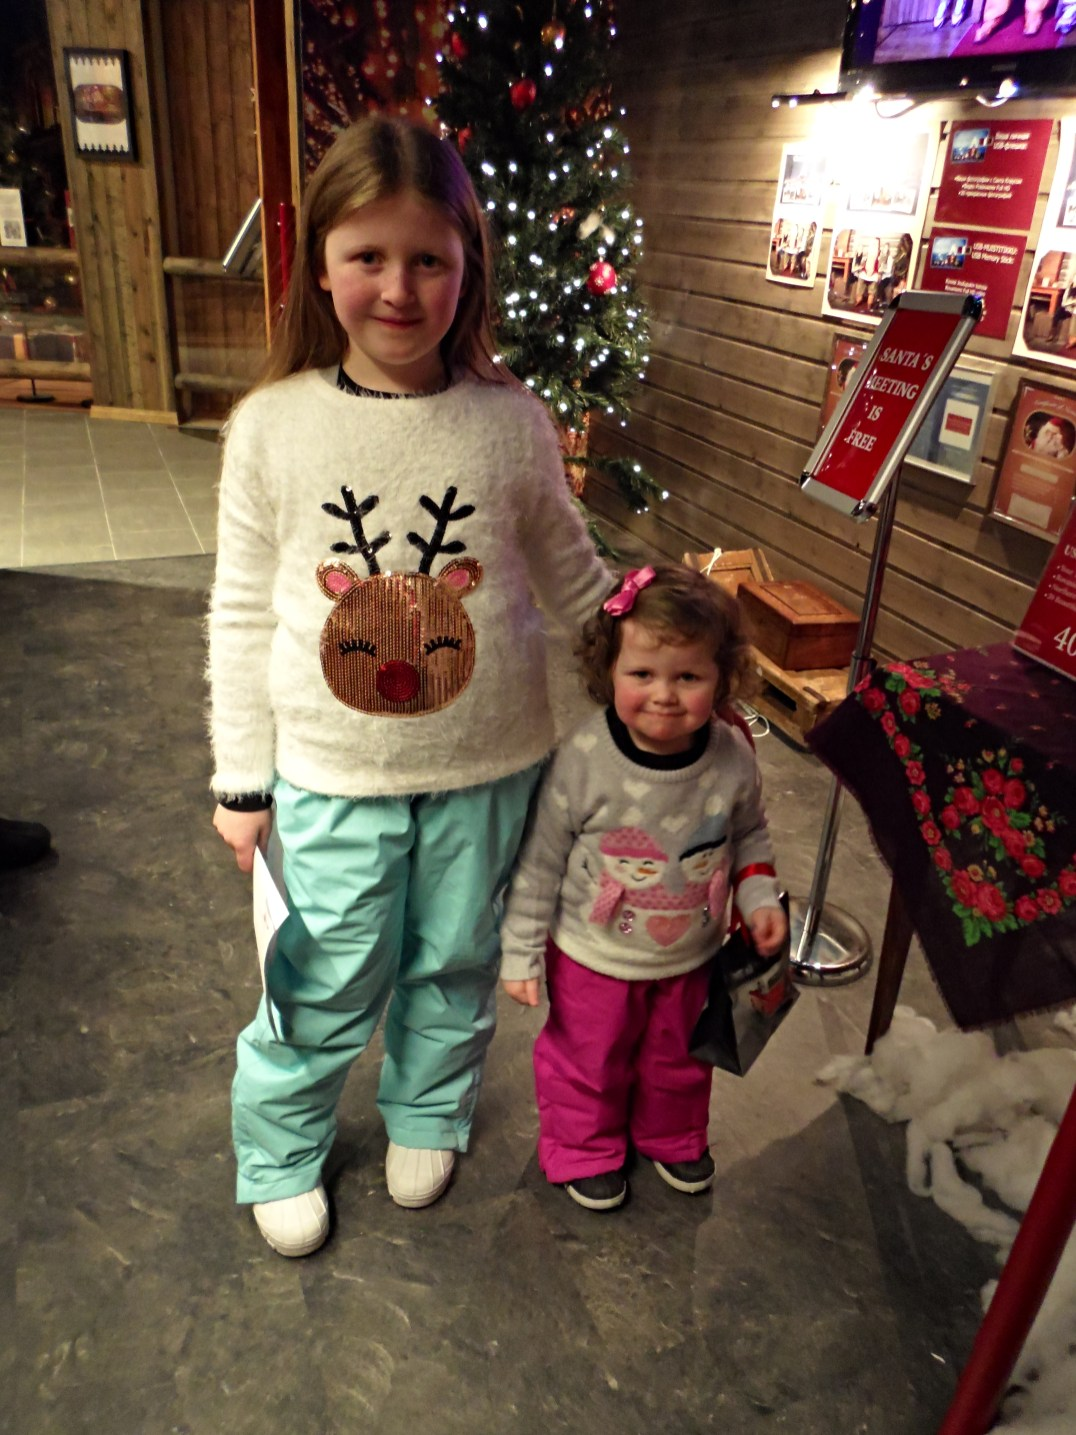 Lily-Belle and Matilda wait to see Santa Claus at the Santa Claus Holiday Village in Rovaniemi, Finland